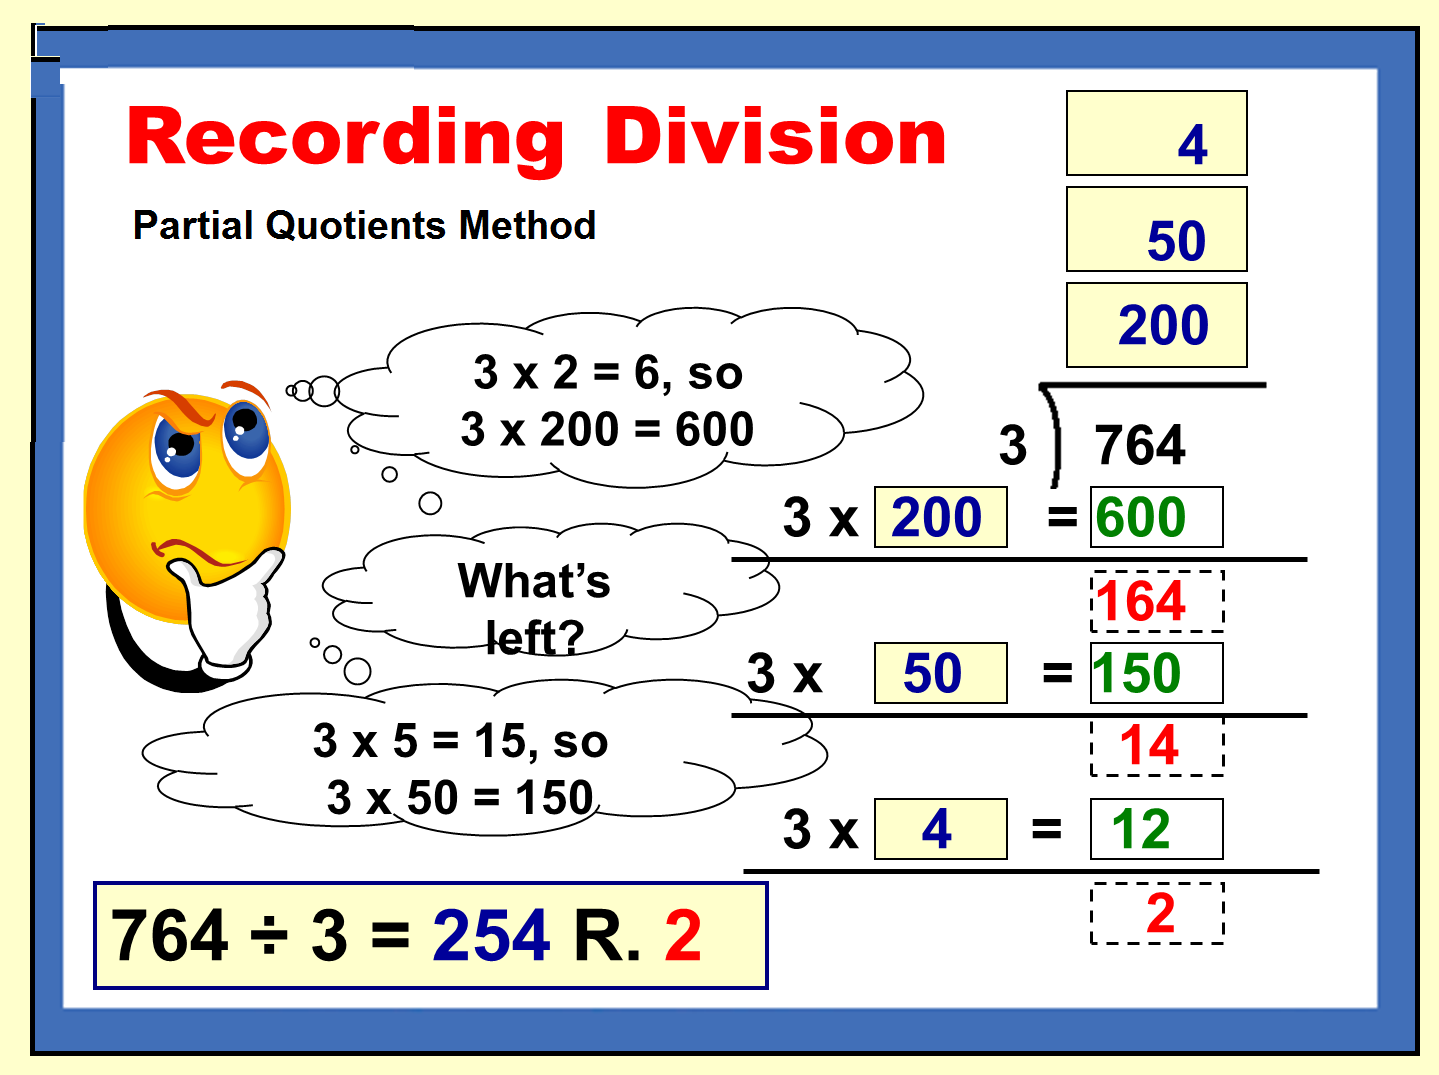 medium resolution of Partial Quotients Worksheets   Printable Worksheets and Activities for  Teachers